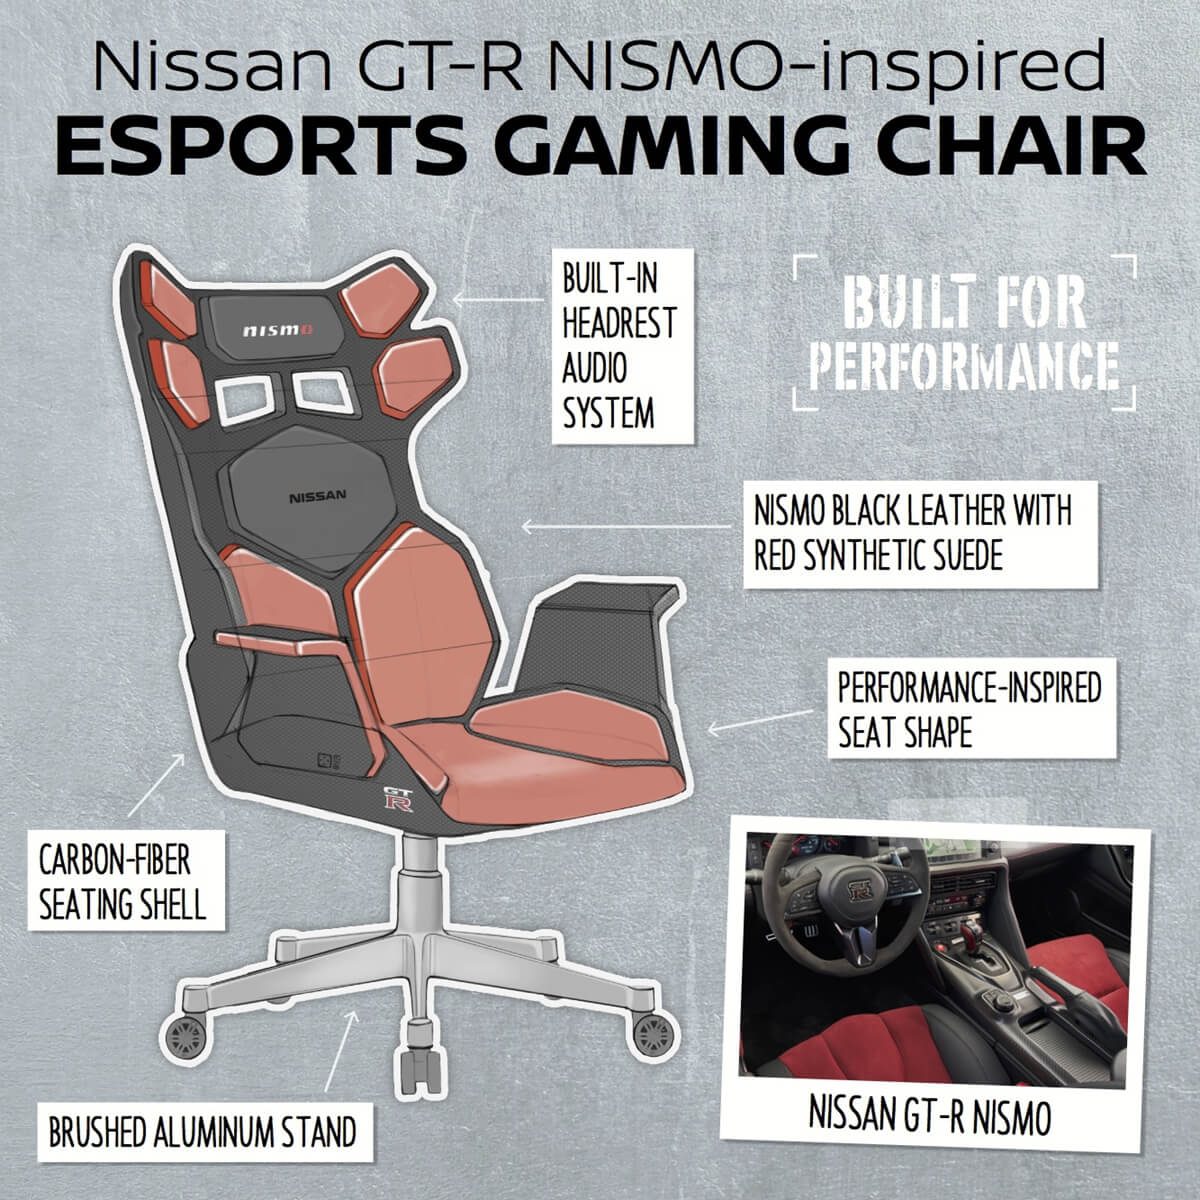 Ultimate-esports-gaming-chairs-NISMO-source.jpg